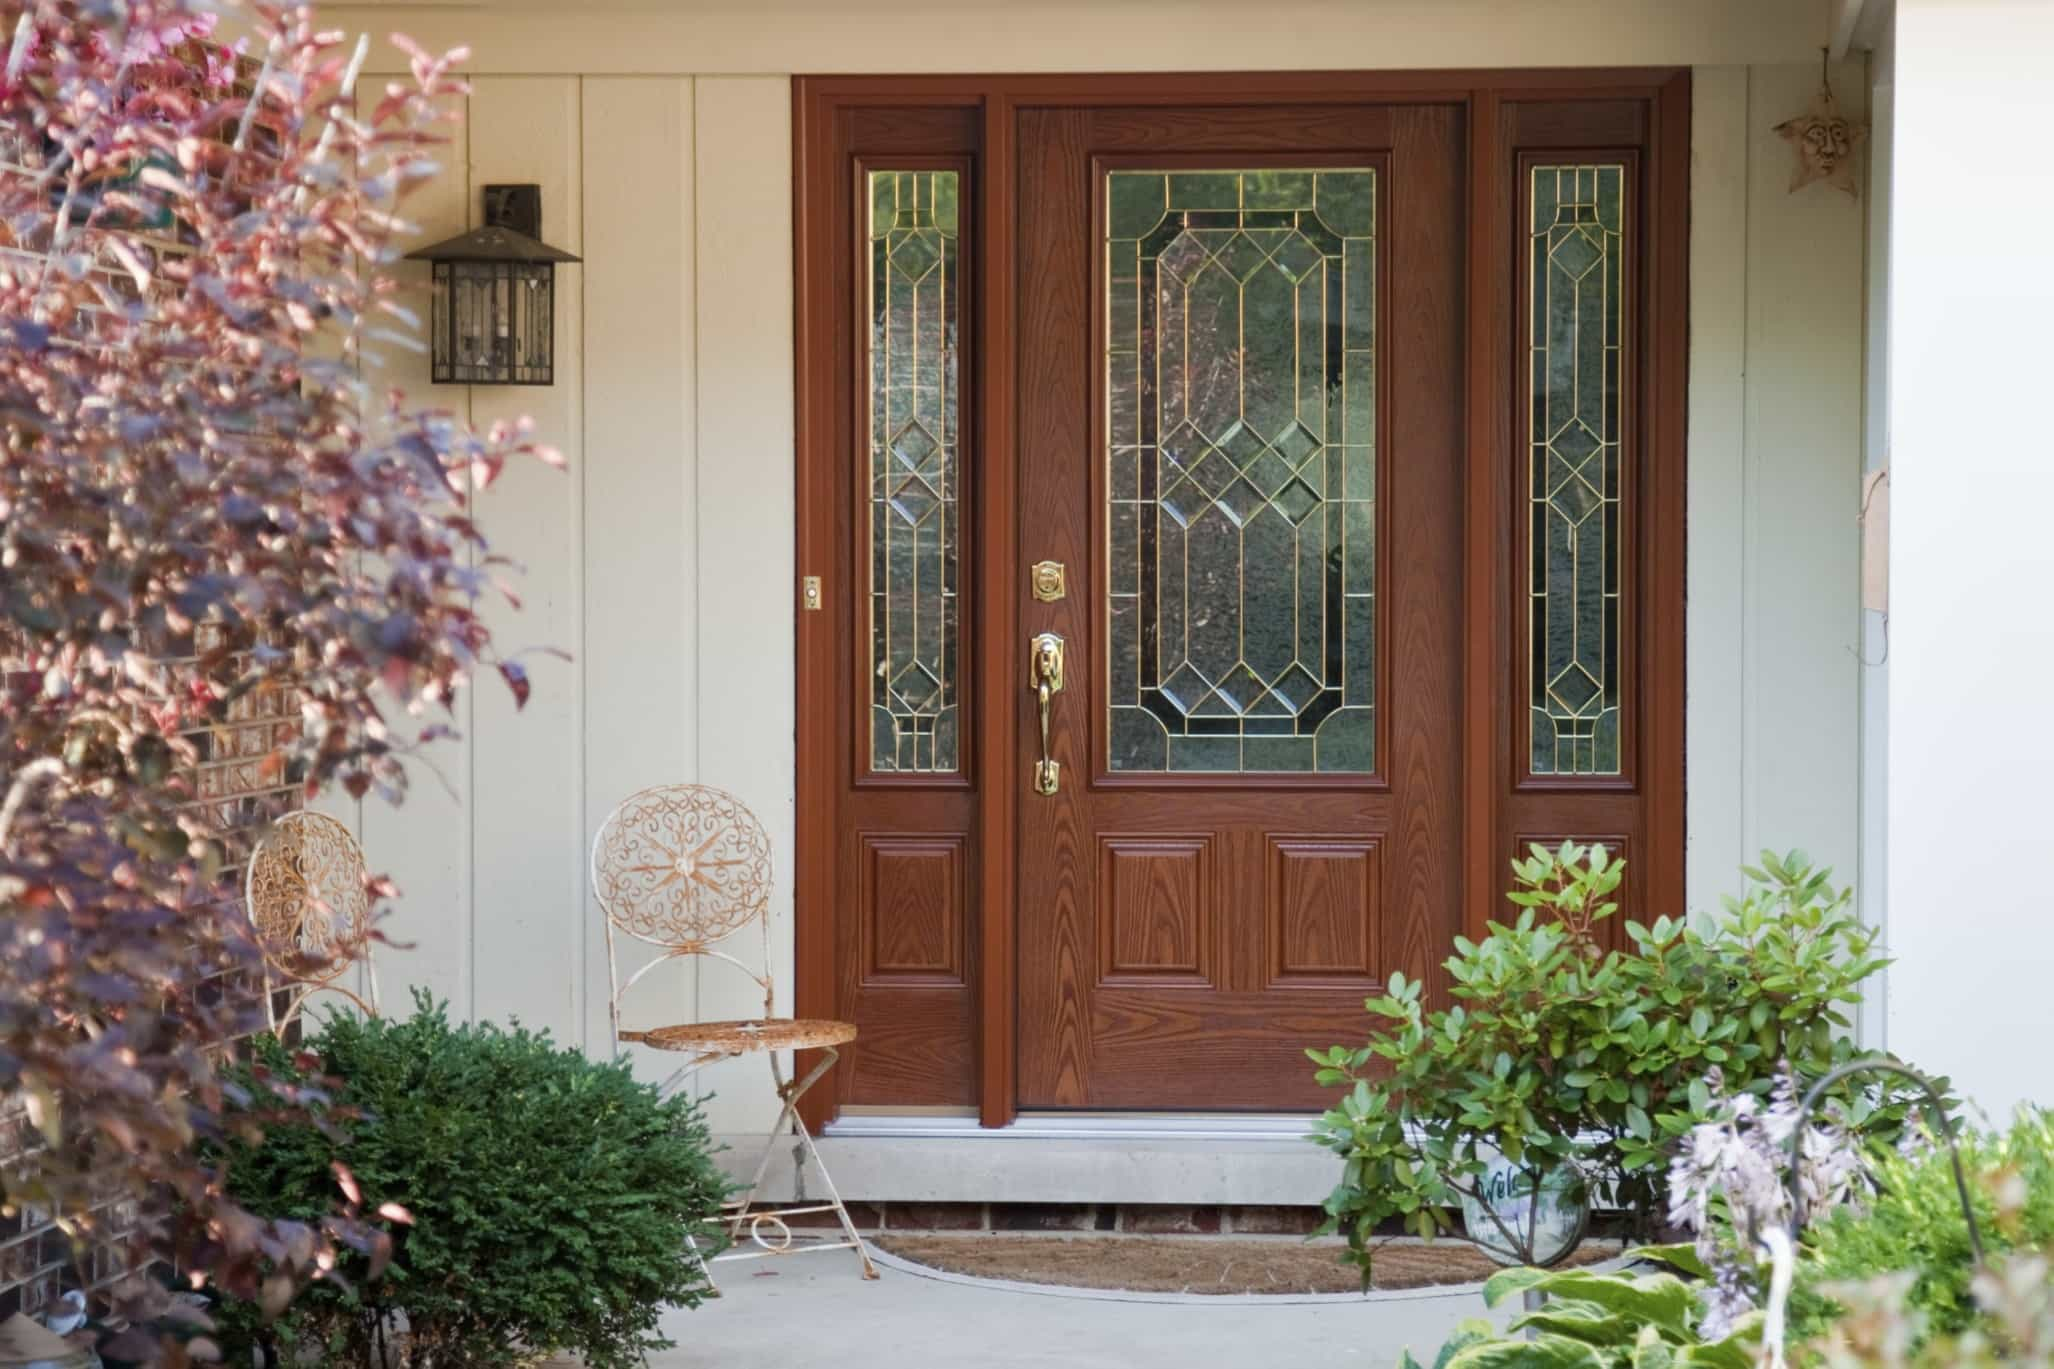 1369 #6B4131 Chicago's Best Fiberglass Entry Doors Sahara Window And Dors pic Fiberglass Entry Doors With Glass 38612054